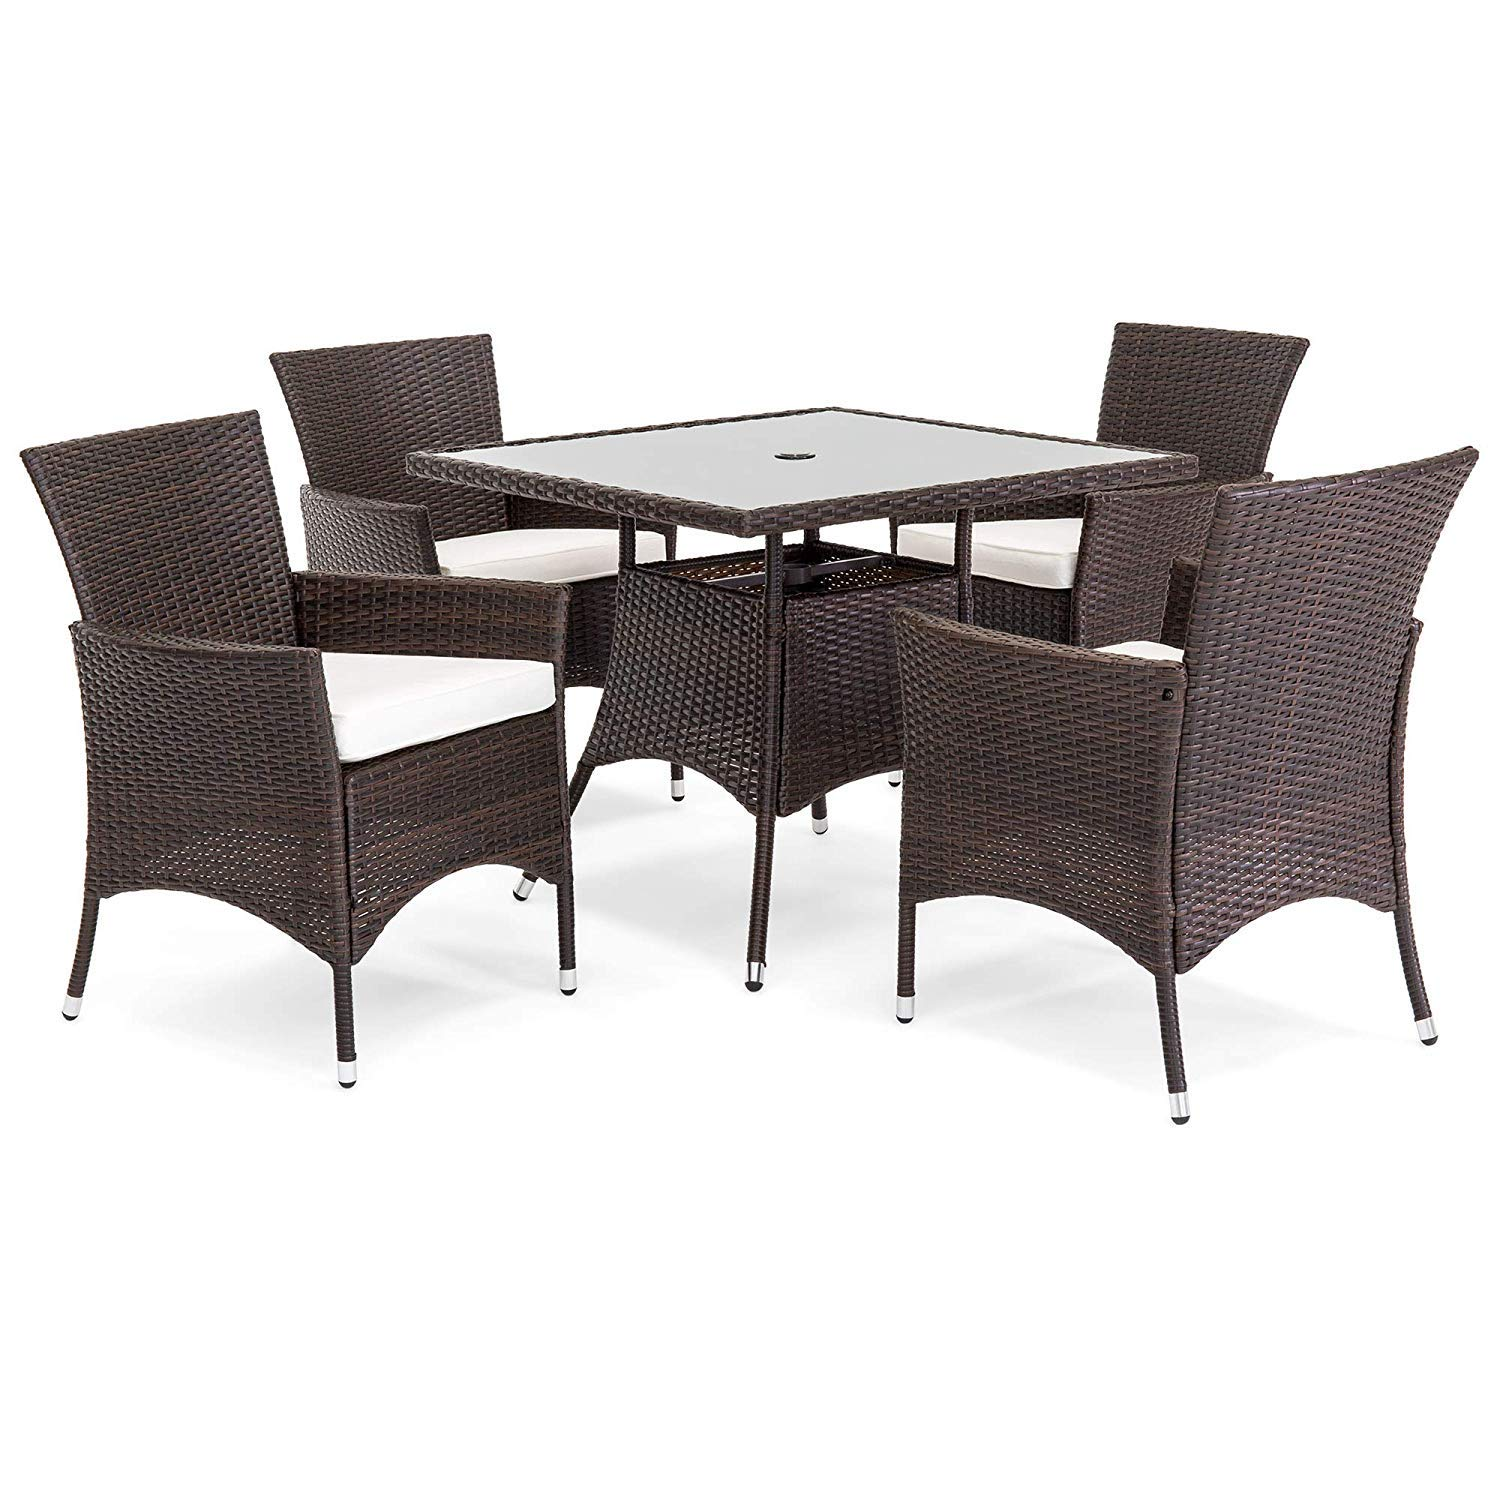 Oakville Furniture 61205 5 Piece Patio Set Square Glass Top Dining Table With Standard Umbrella Hole 4 Outdoor Chairs Brown Wicker Beige Cushion Buy Online In China At China Desertcart Com Productid 166575436